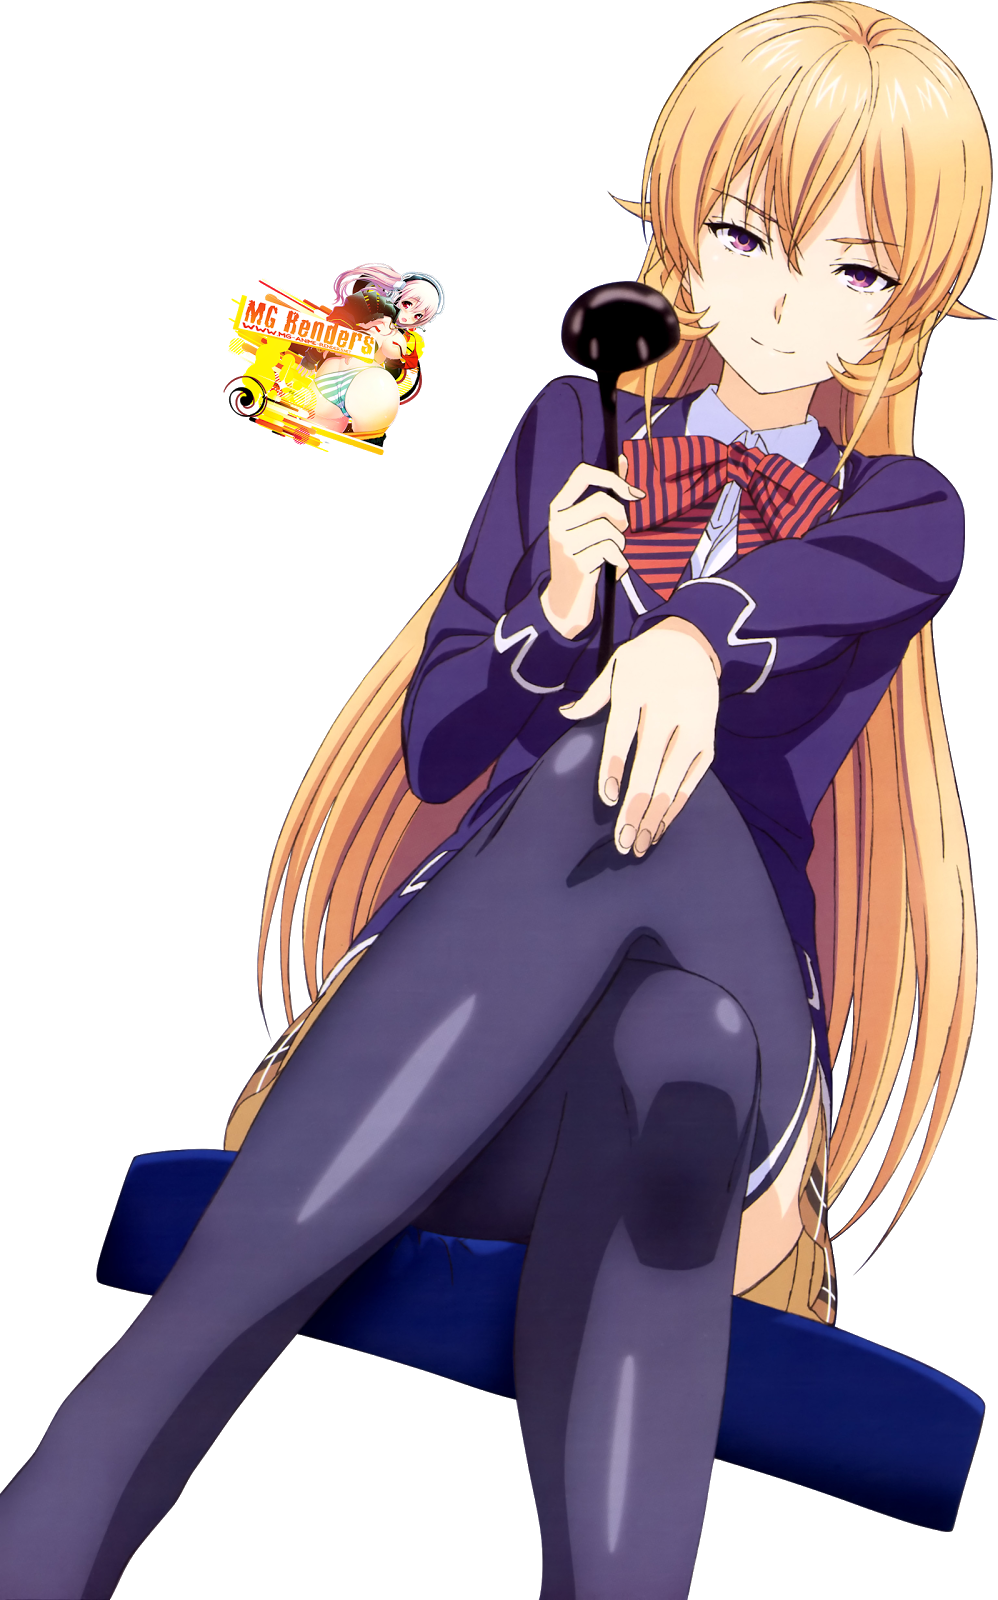 Tags: Anime, Render,  Crossed Legs,  Nakiri Erina,  Shokugeki no Souma,  PNG, Image, Picture